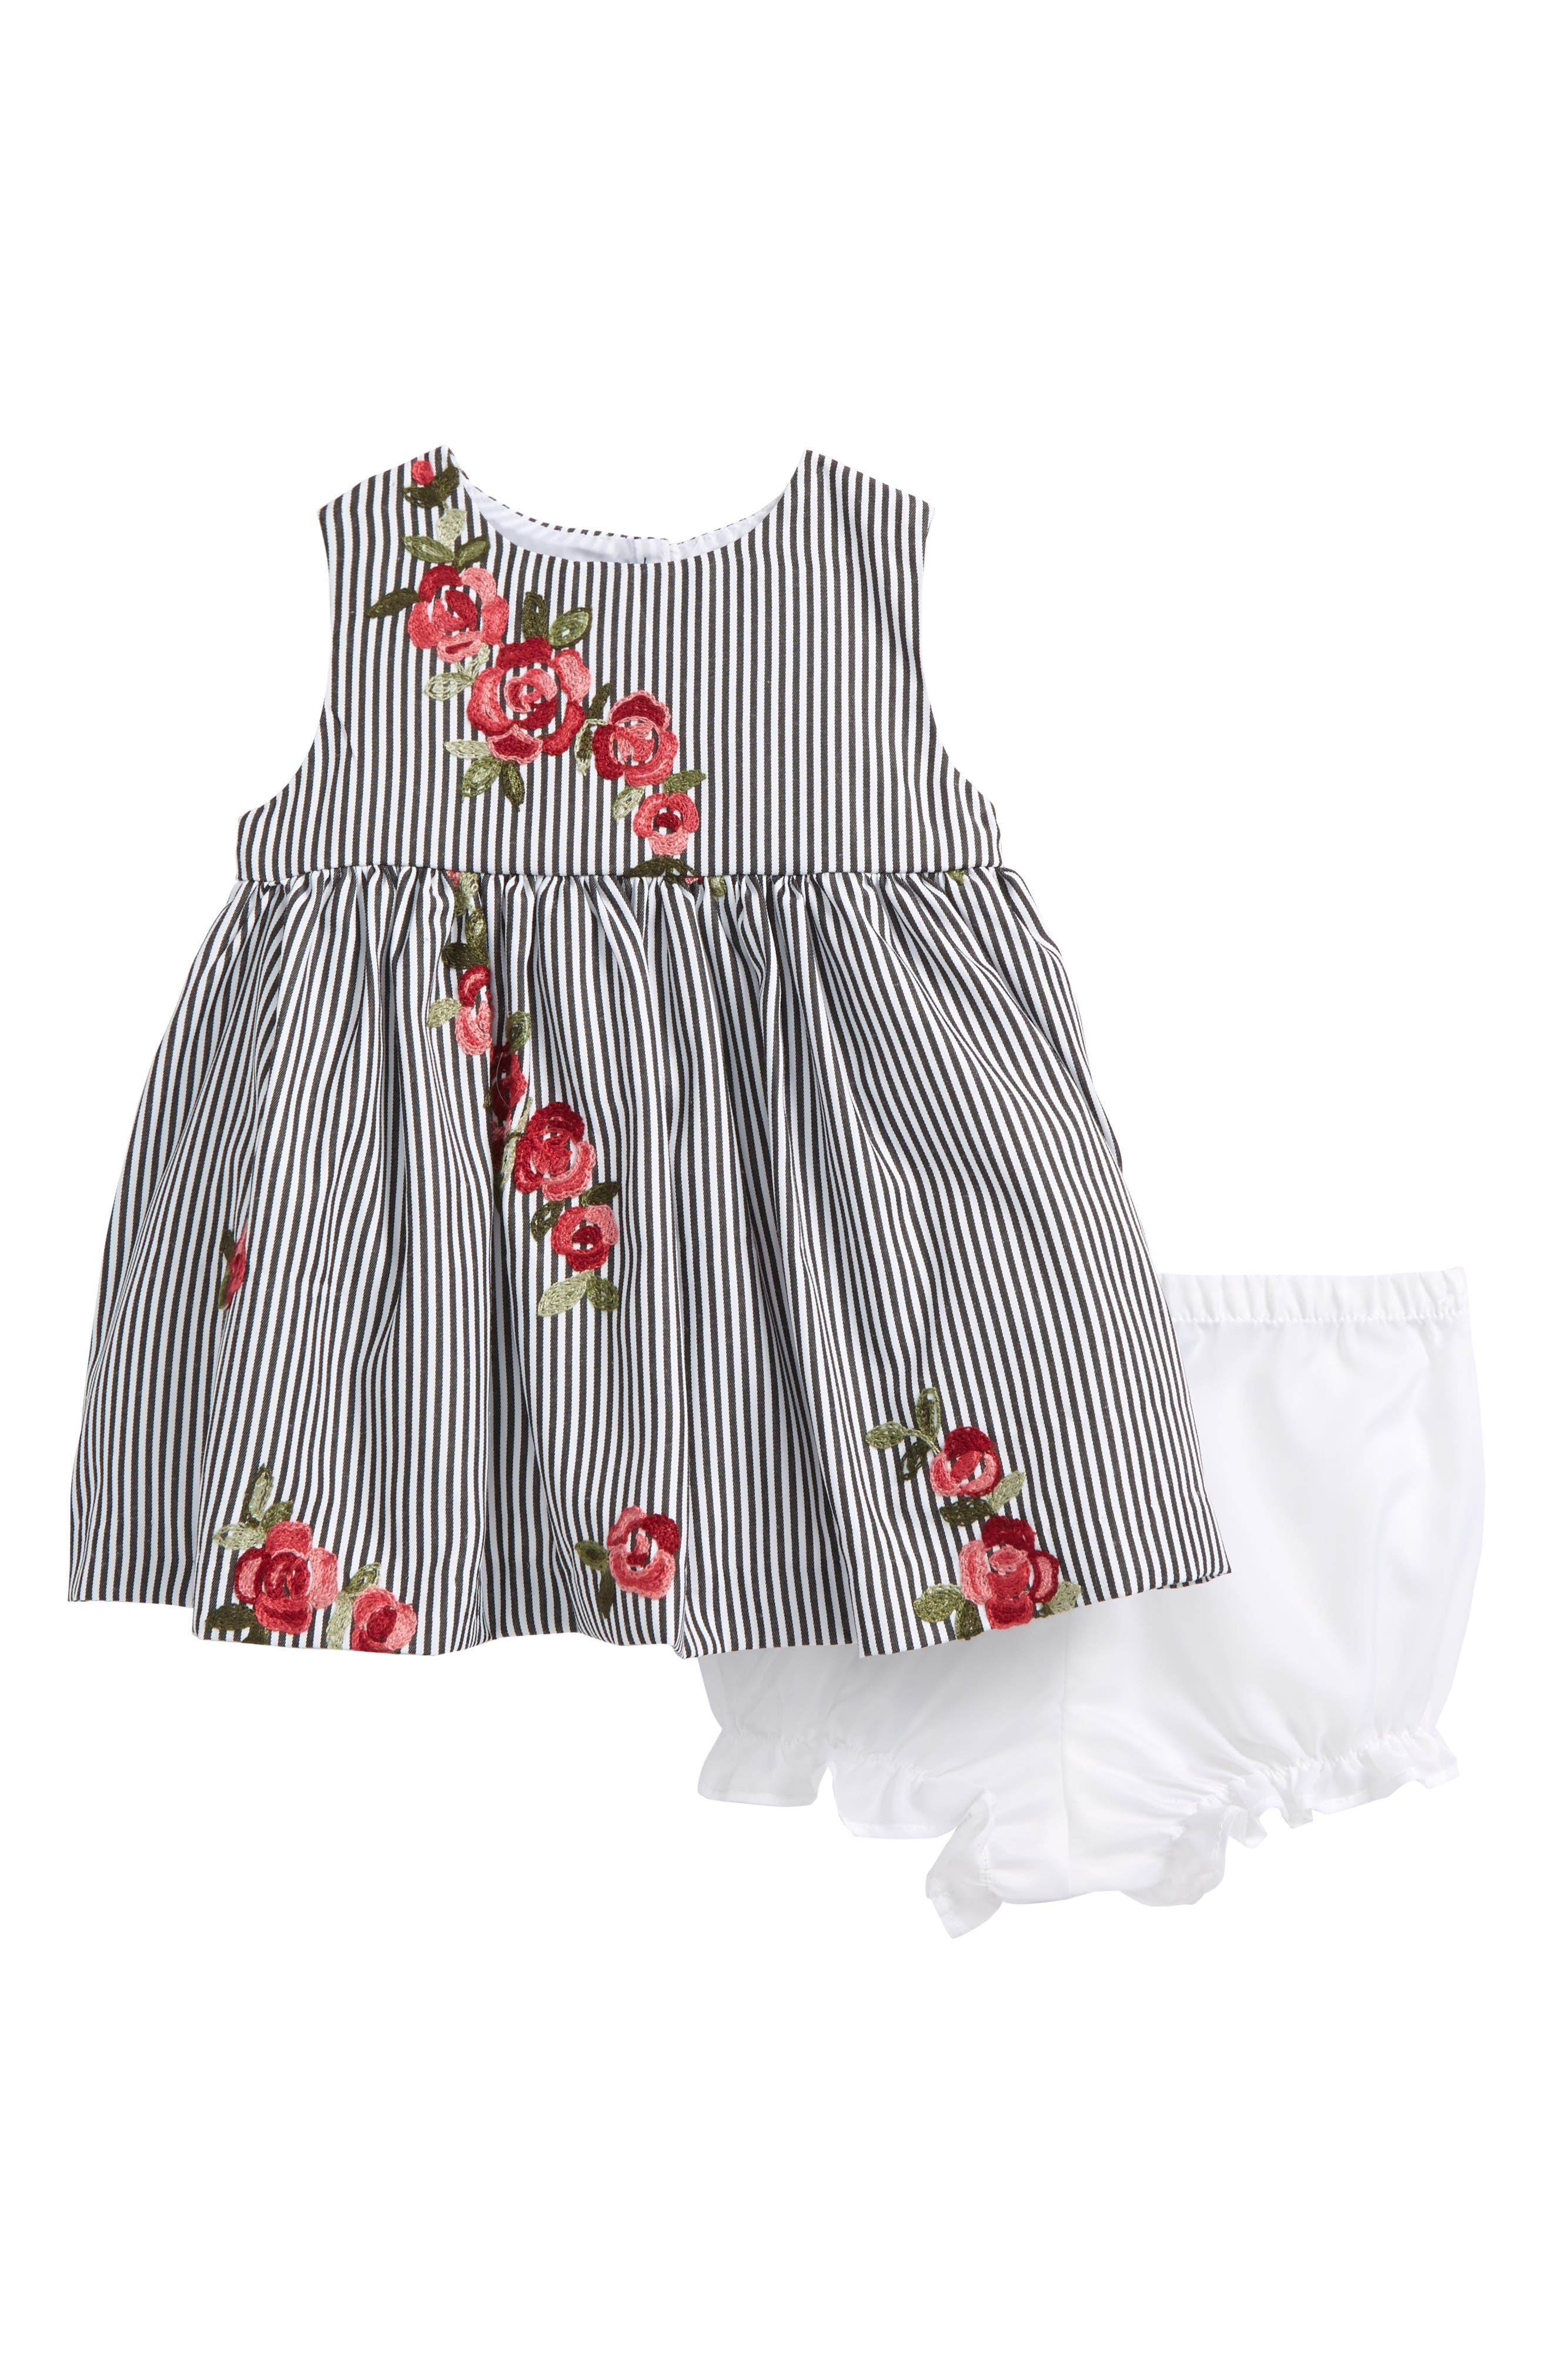 Alternate Image 1 Selected - Frais Embroidered Dress (Baby Girls)